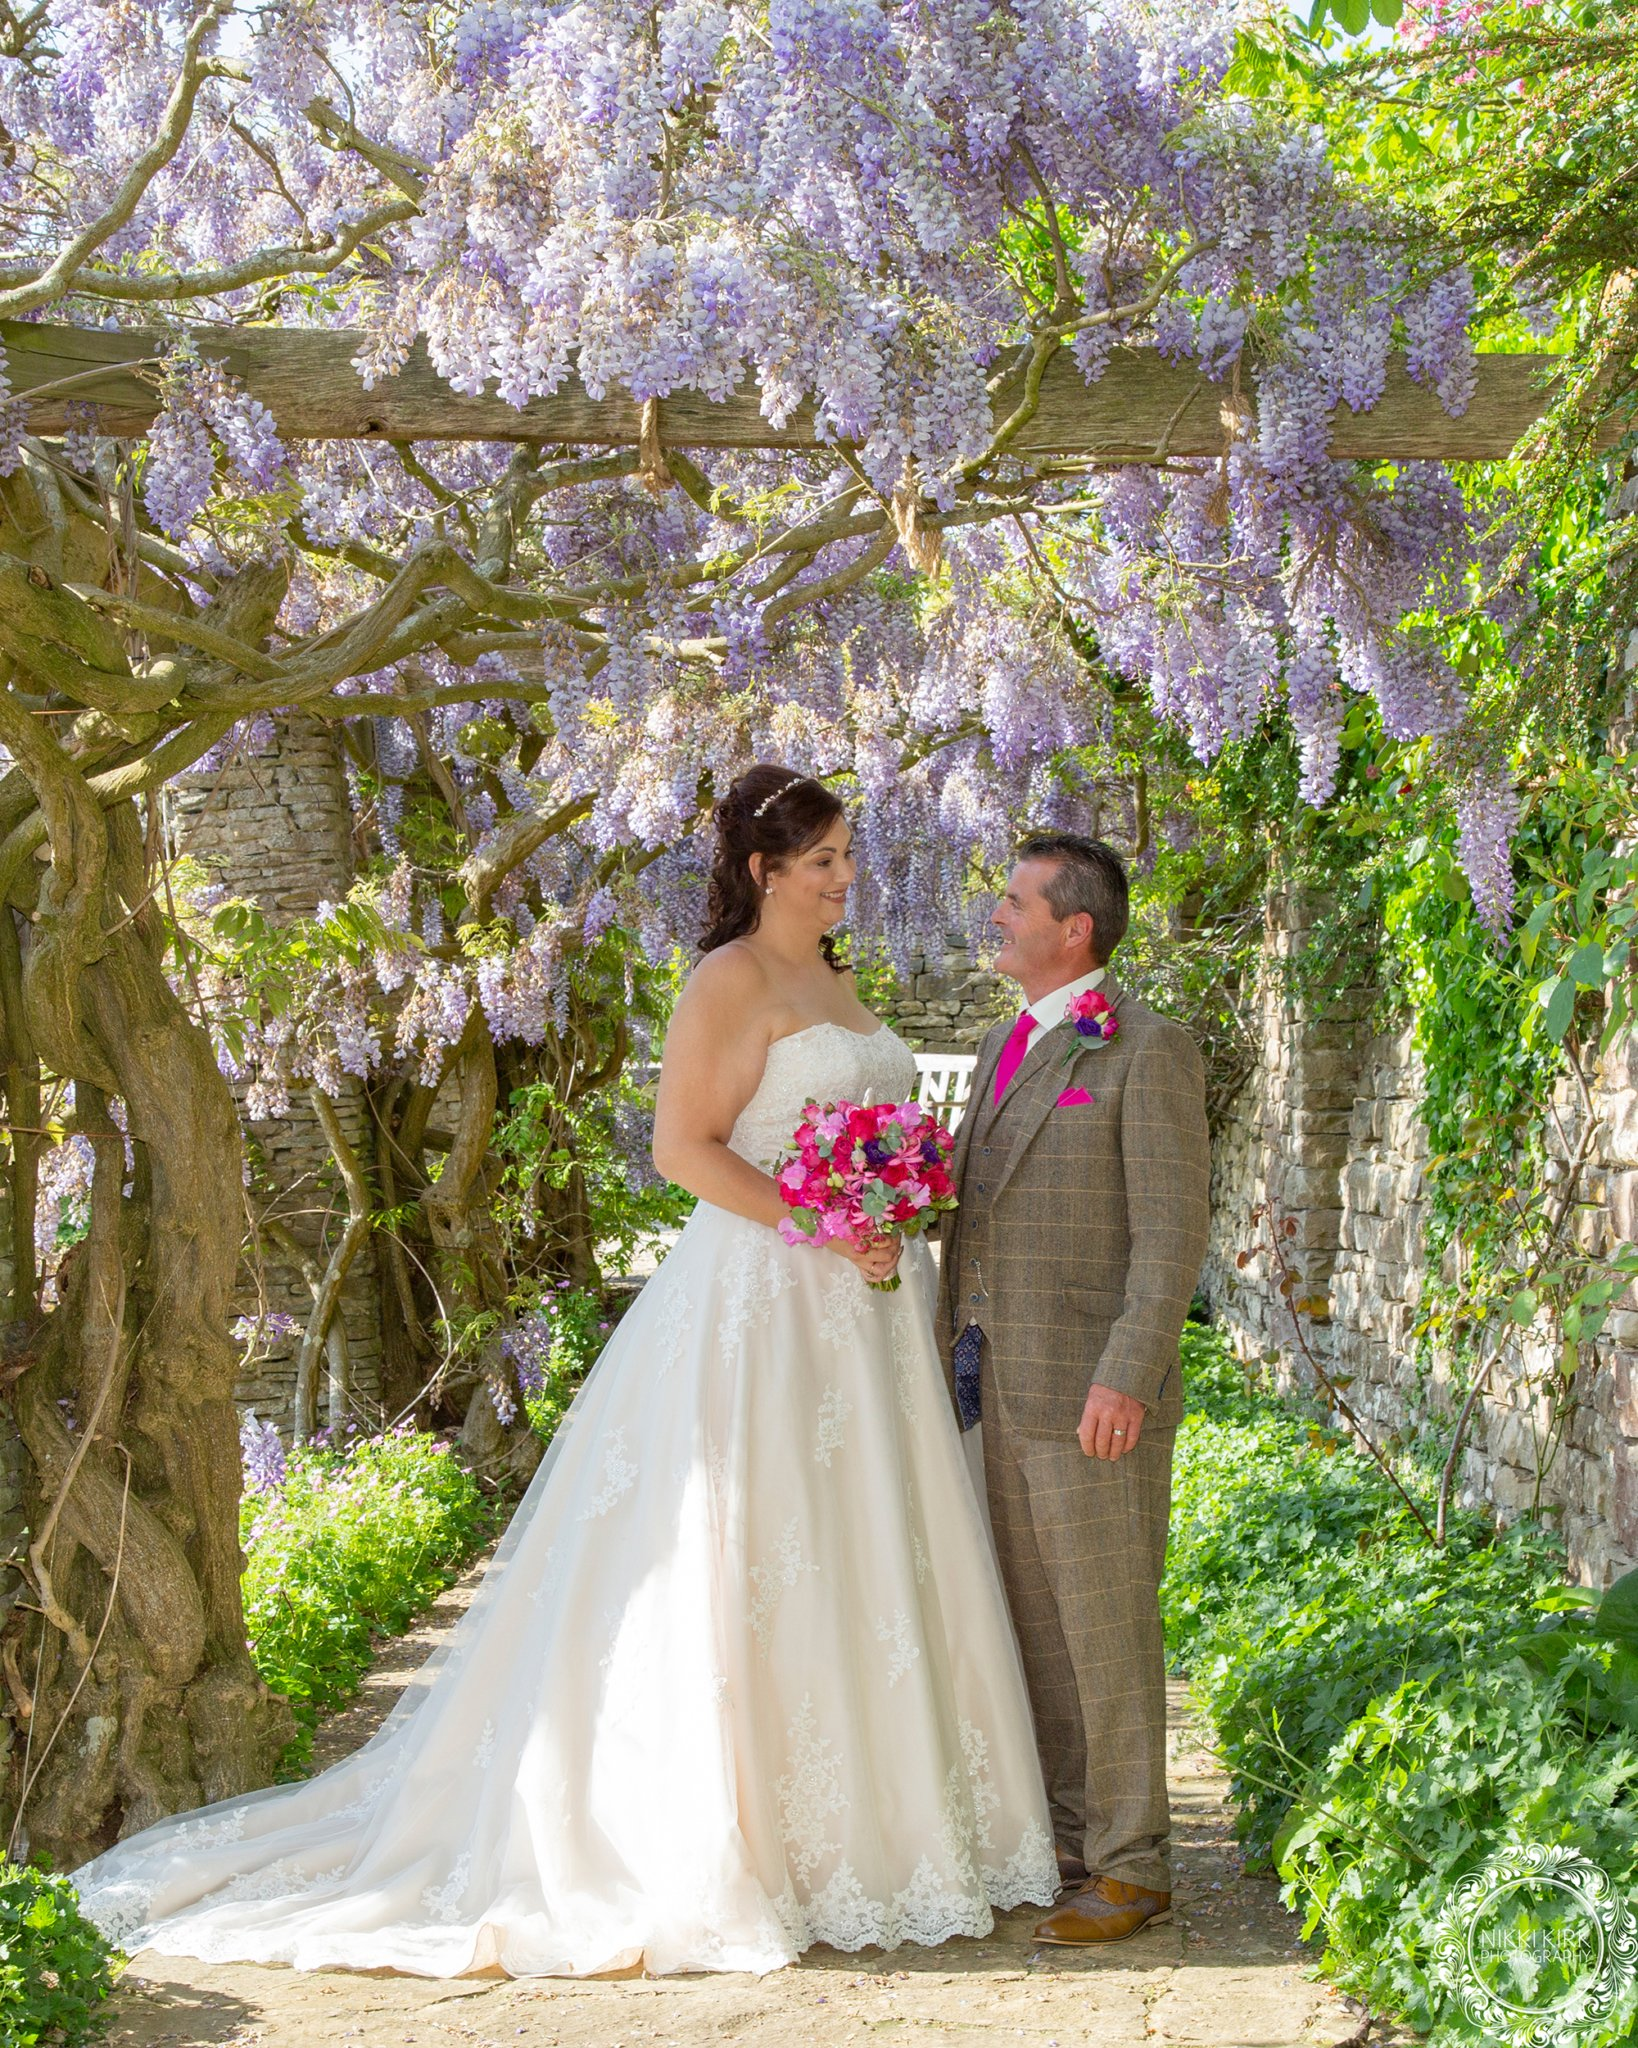 Glenfall House Wedding Photographer wisteria walk